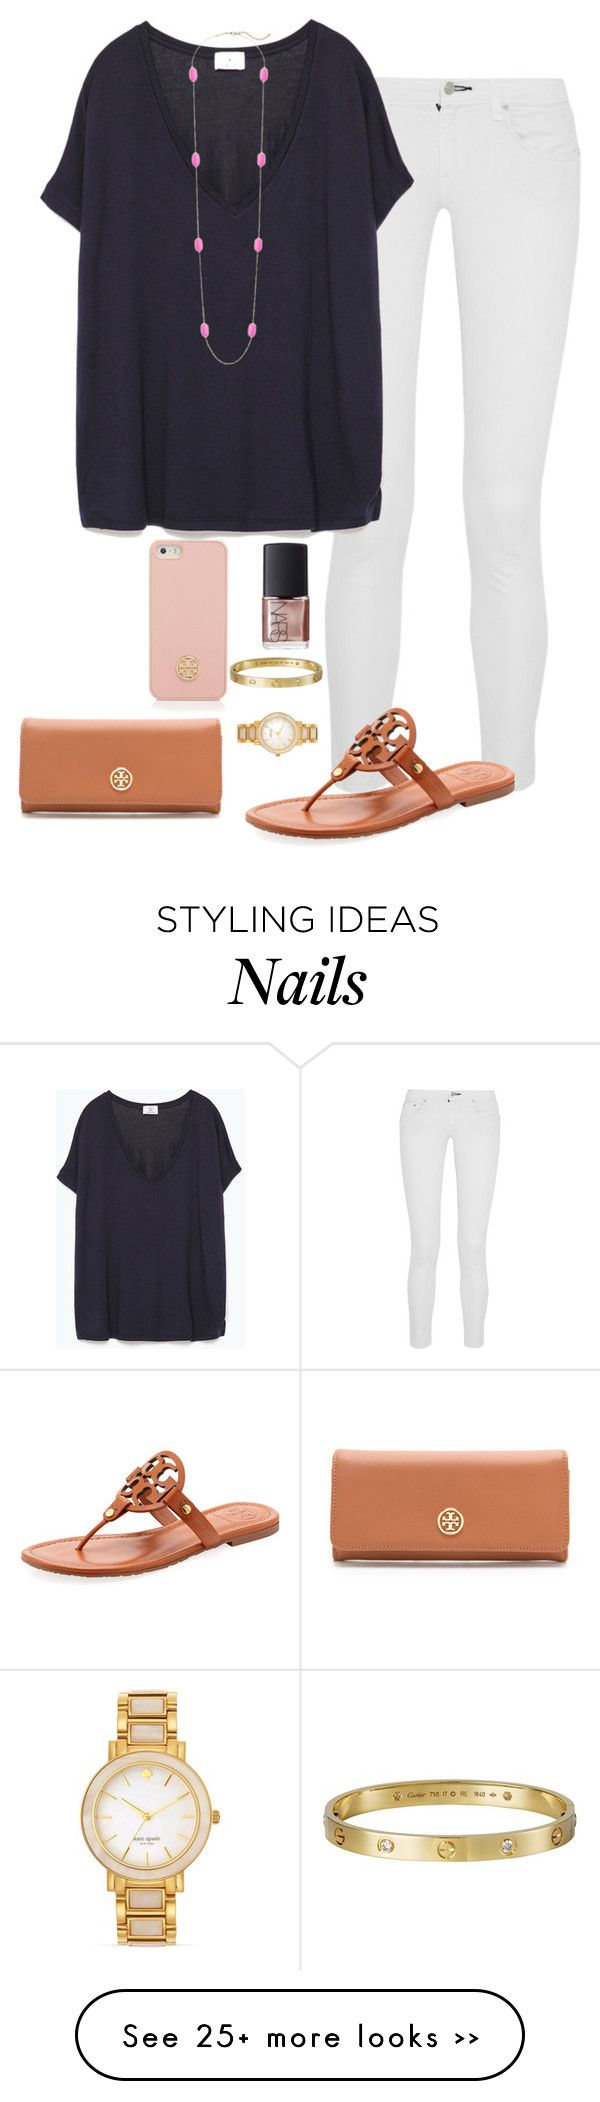 Summer Internship Style: 8 Looks From Polyvore That Make TheGrade Summer Internship Style: 8 Looks From Polyvore That Make TheGrade new picture